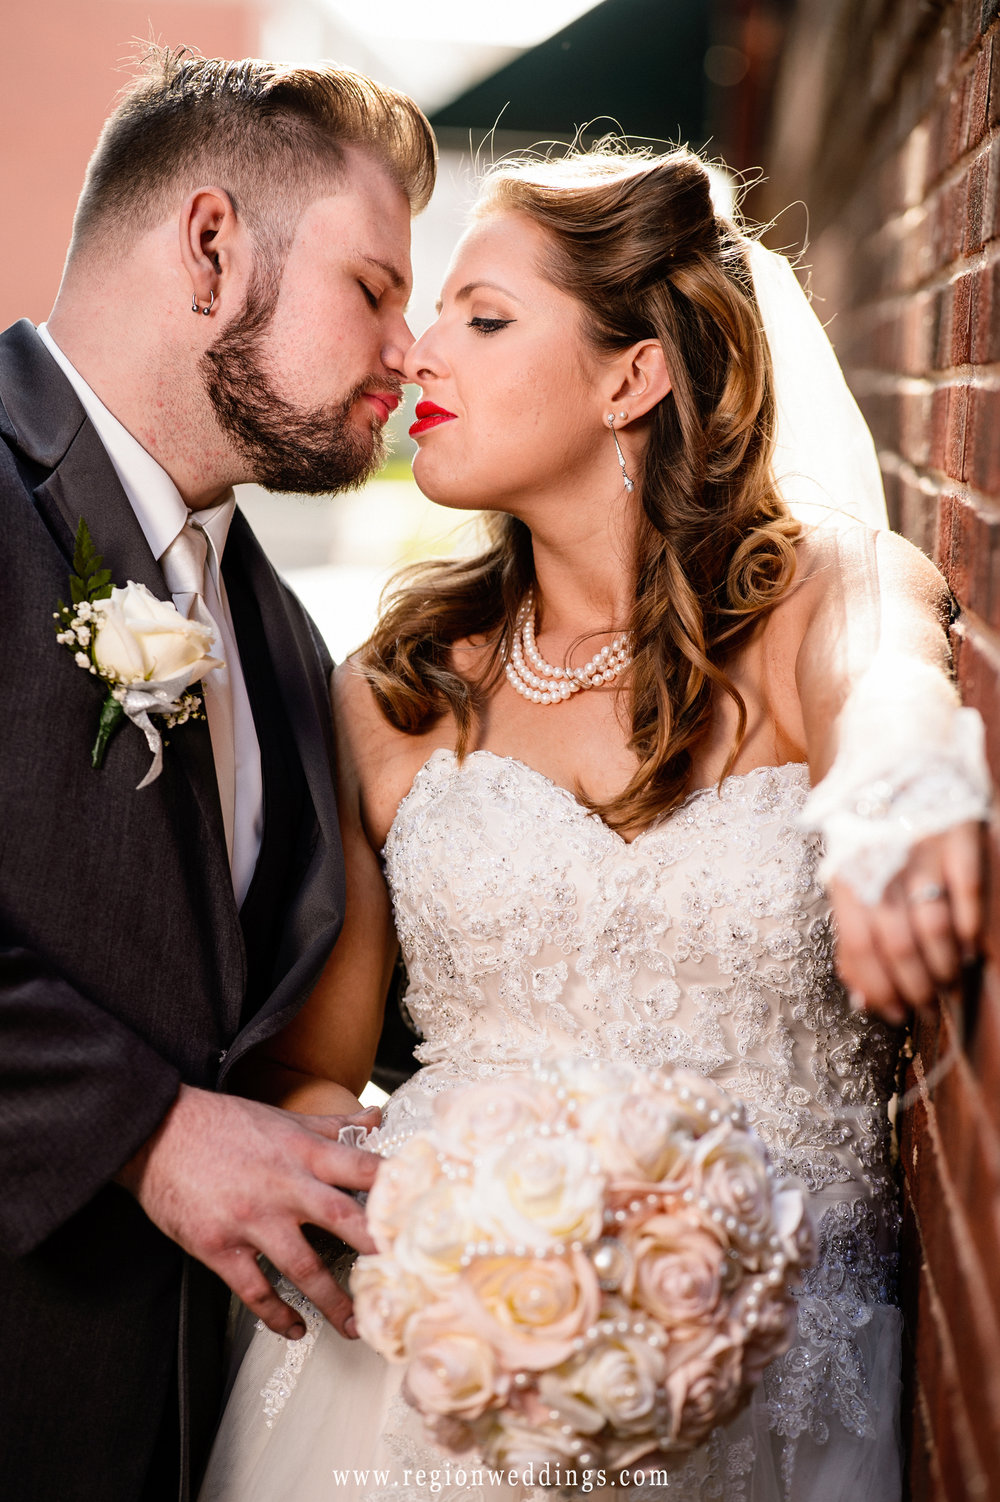 Passionate moment for the bride and groom.